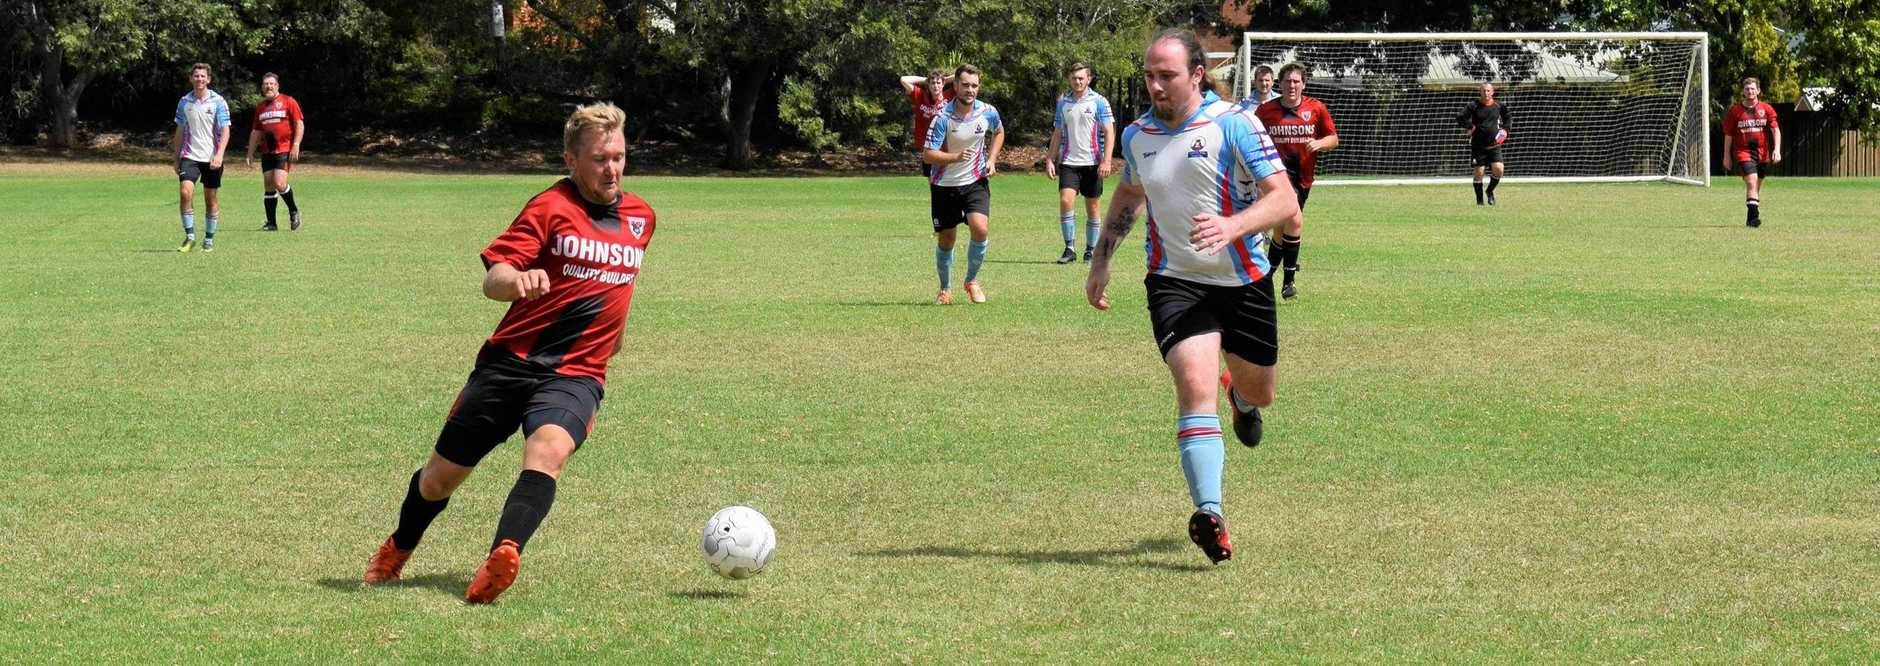 GRIN AND BEAR IT: The Chinchilla Bears great start to the season came to a swift end last weekend with a disappointing loss against Toowoomba's Garden City Raiders.